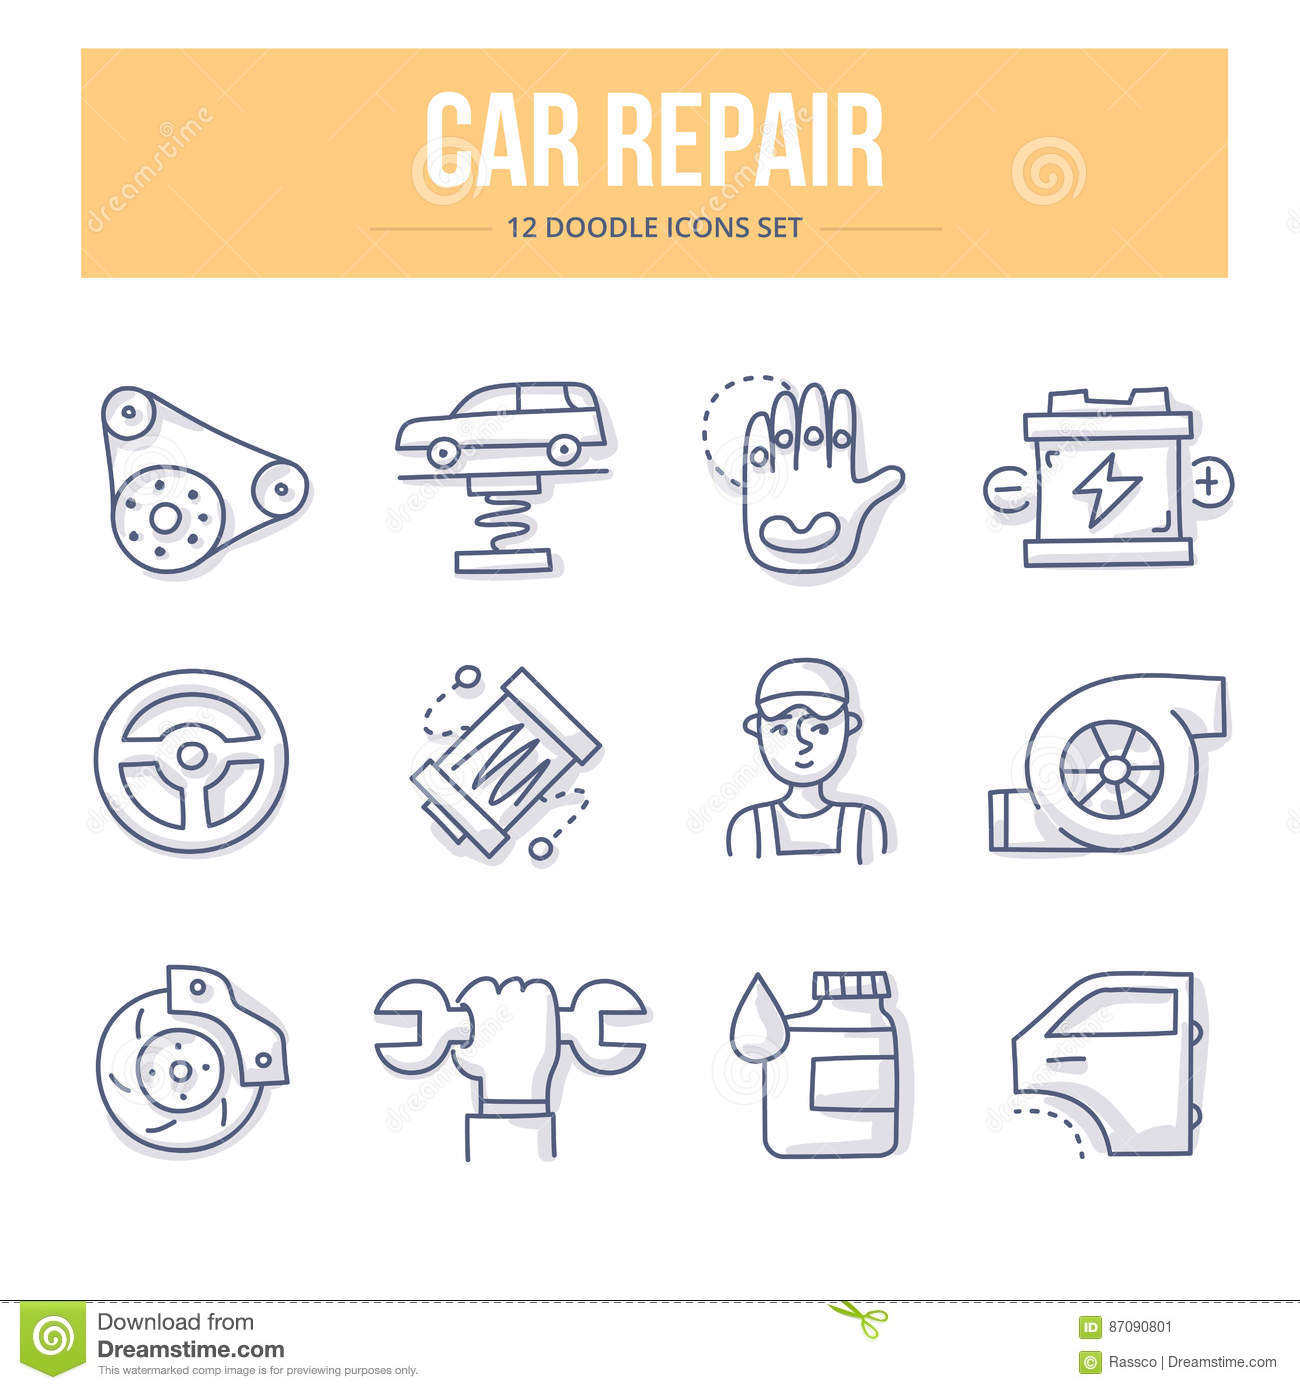 Car Repair Doodle Icons Stock Vector Illustration Of Garage 87090801